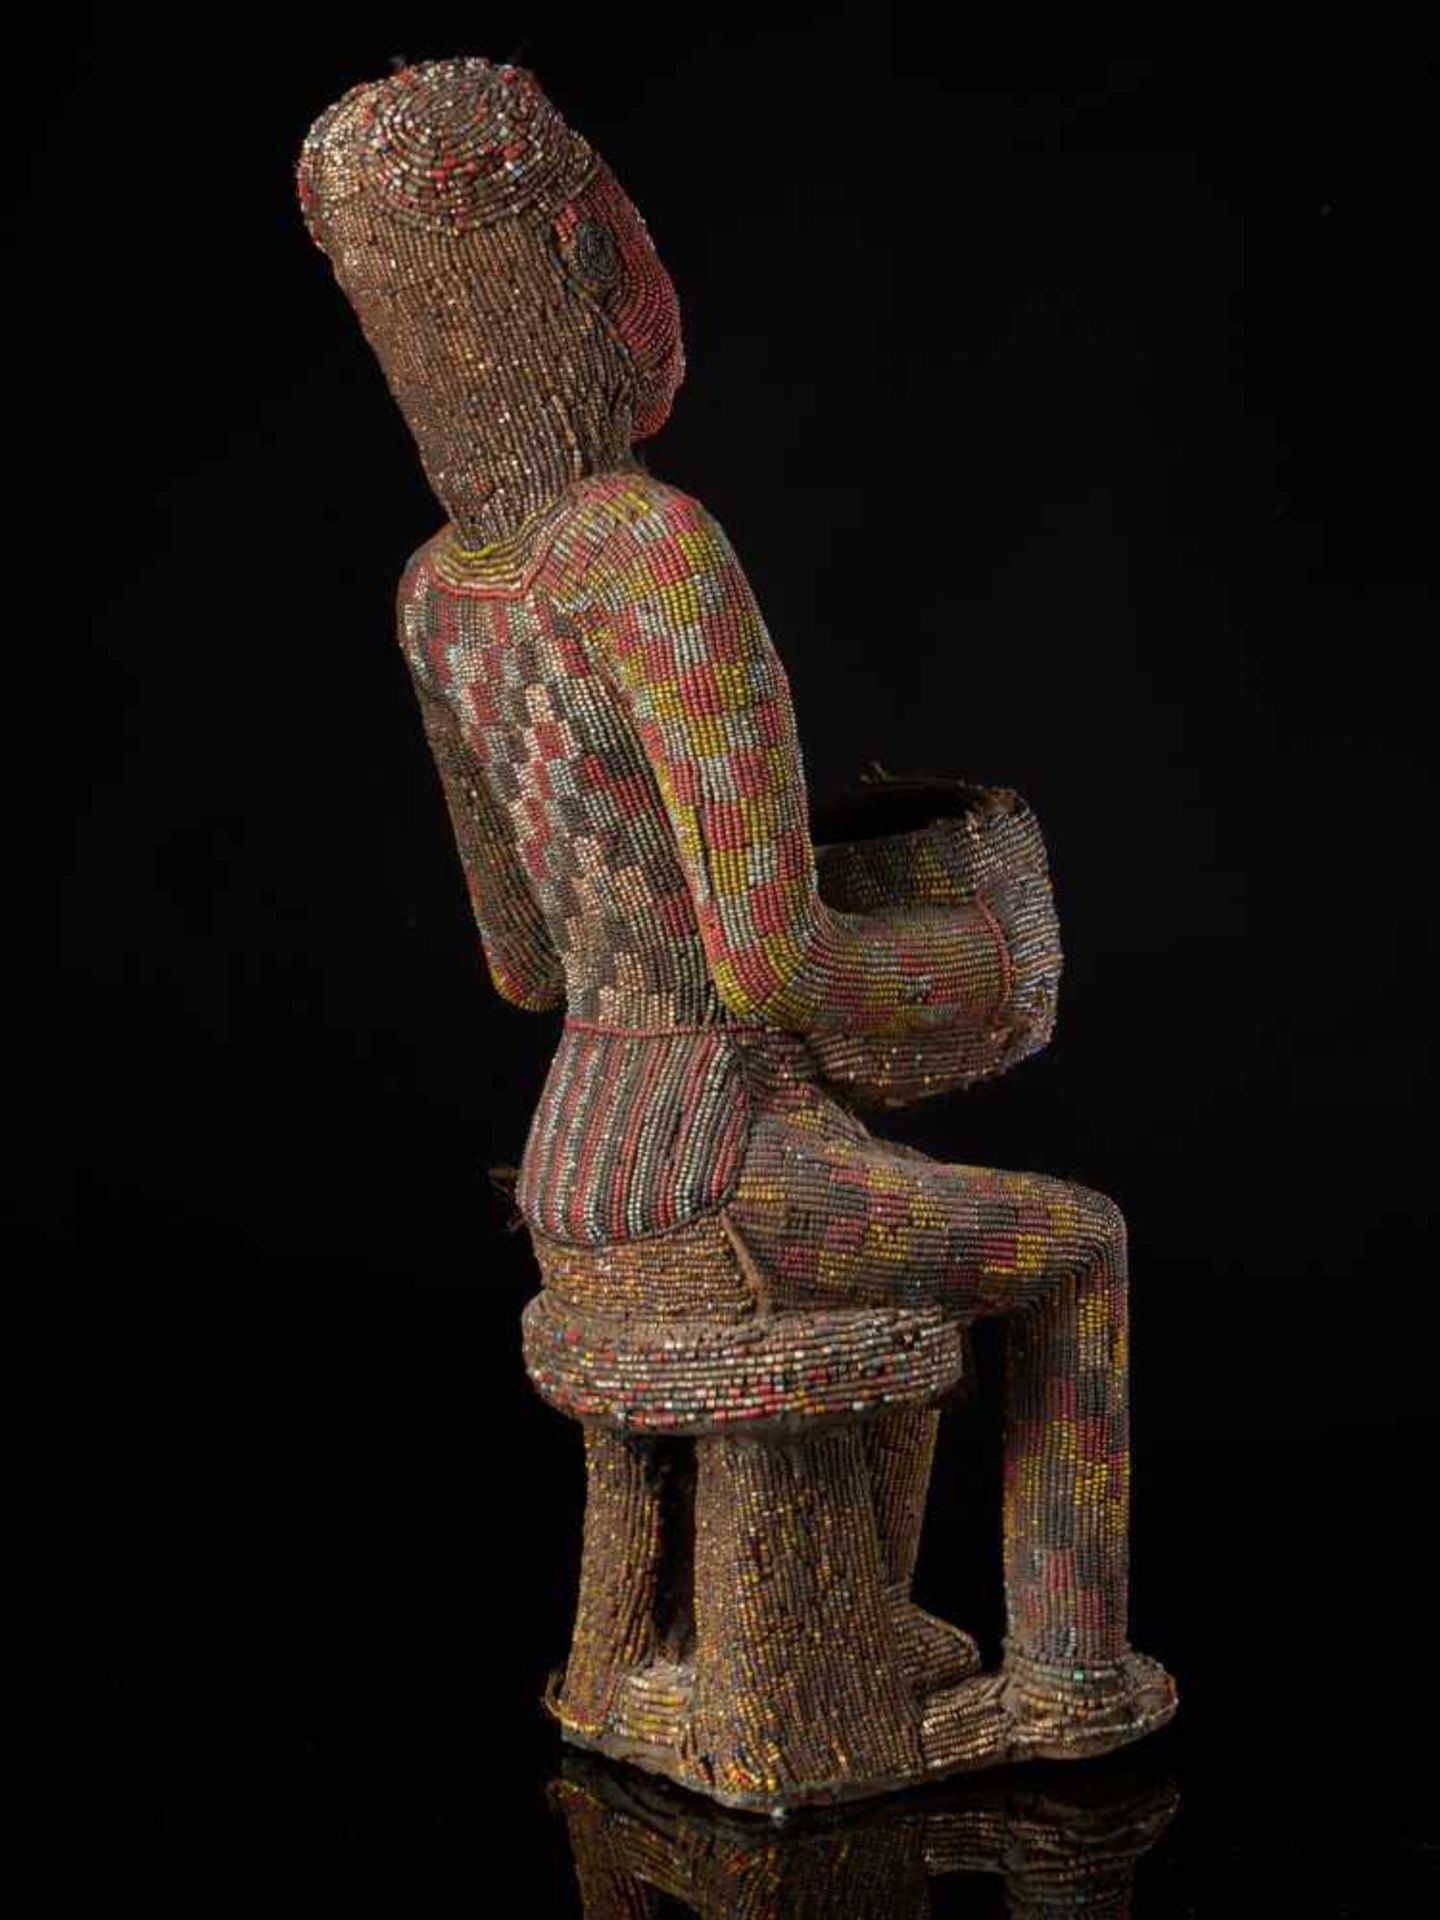 Beaded Figure Of Cupholder - Tribal ArtA beaded figure of a man sitting on a stool, holding a cup. - Bild 4 aus 6